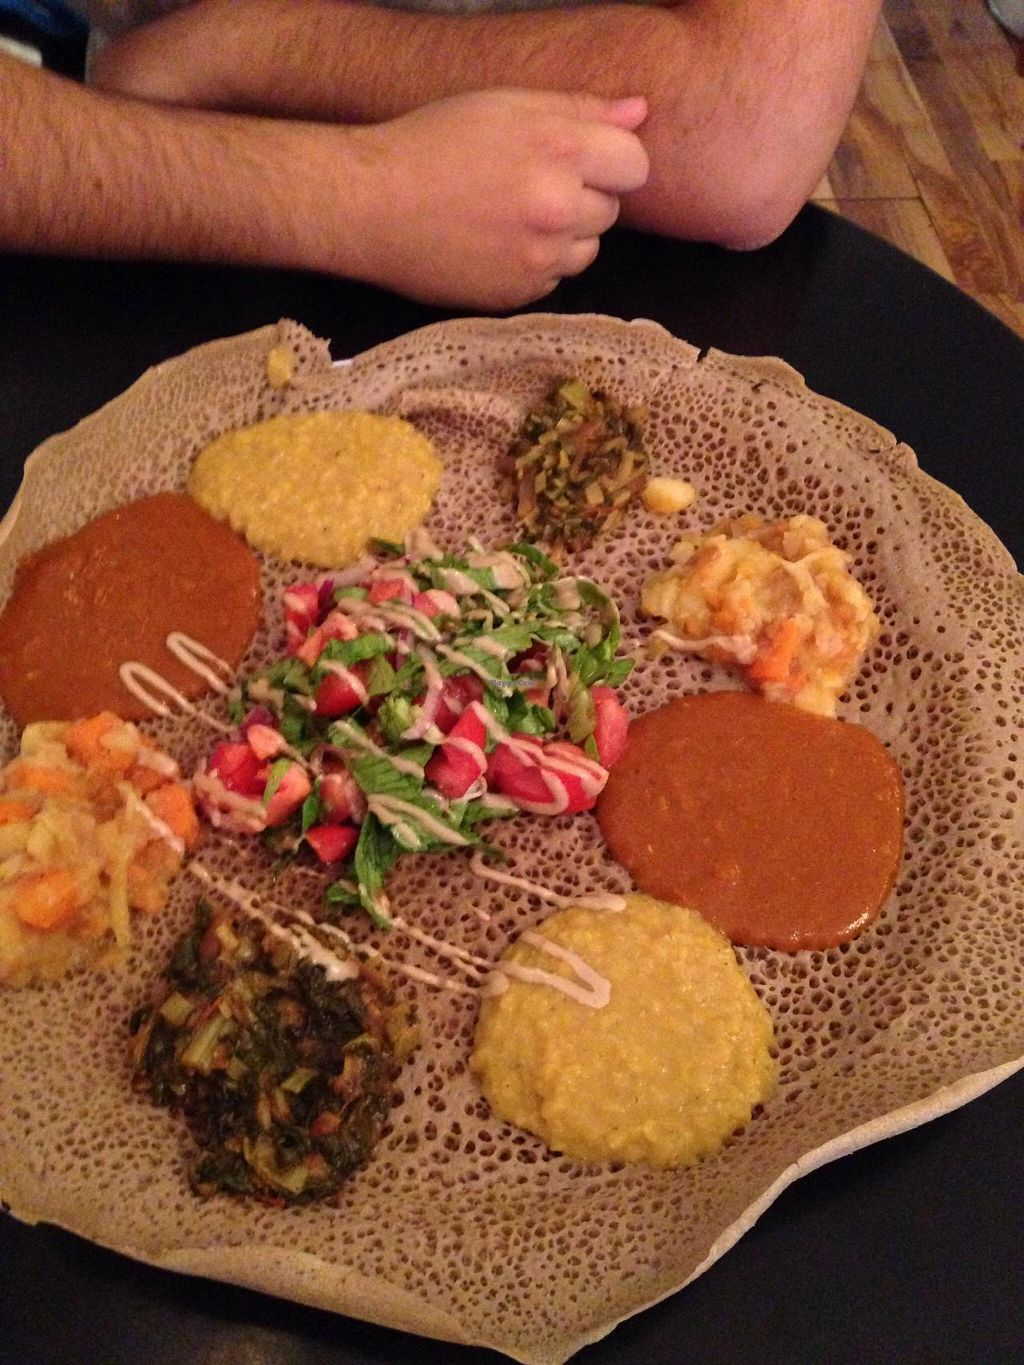 """Photo of Tenat  by <a href=""""/members/profile/me3sh"""">me3sh</a> <br/>My boyfriend and I shared this. Very filling but I wish I had it all to myself :-) so good <br/> January 4, 2015  - <a href='/contact/abuse/image/38946/89460'>Report</a>"""